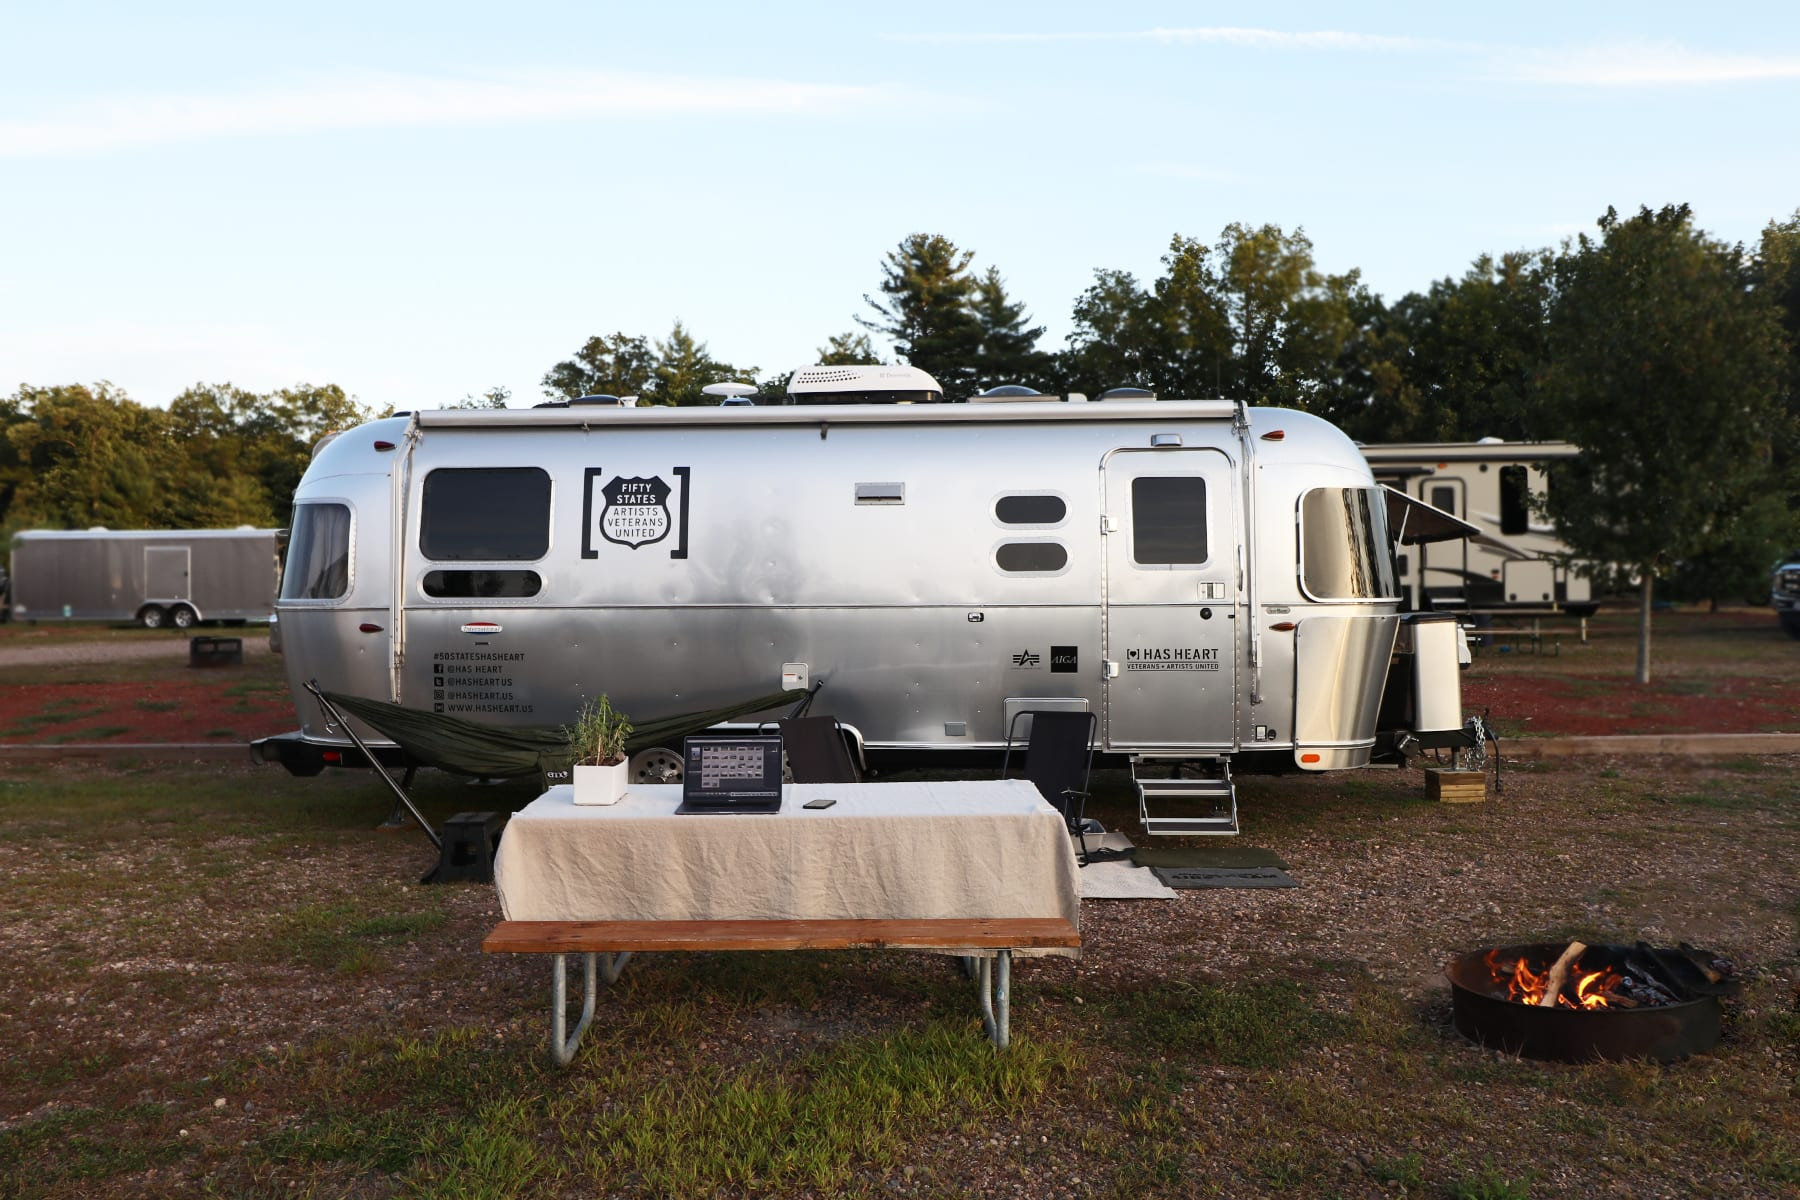 07-CT-journey-airstream-bearcreekrvpark.jpg